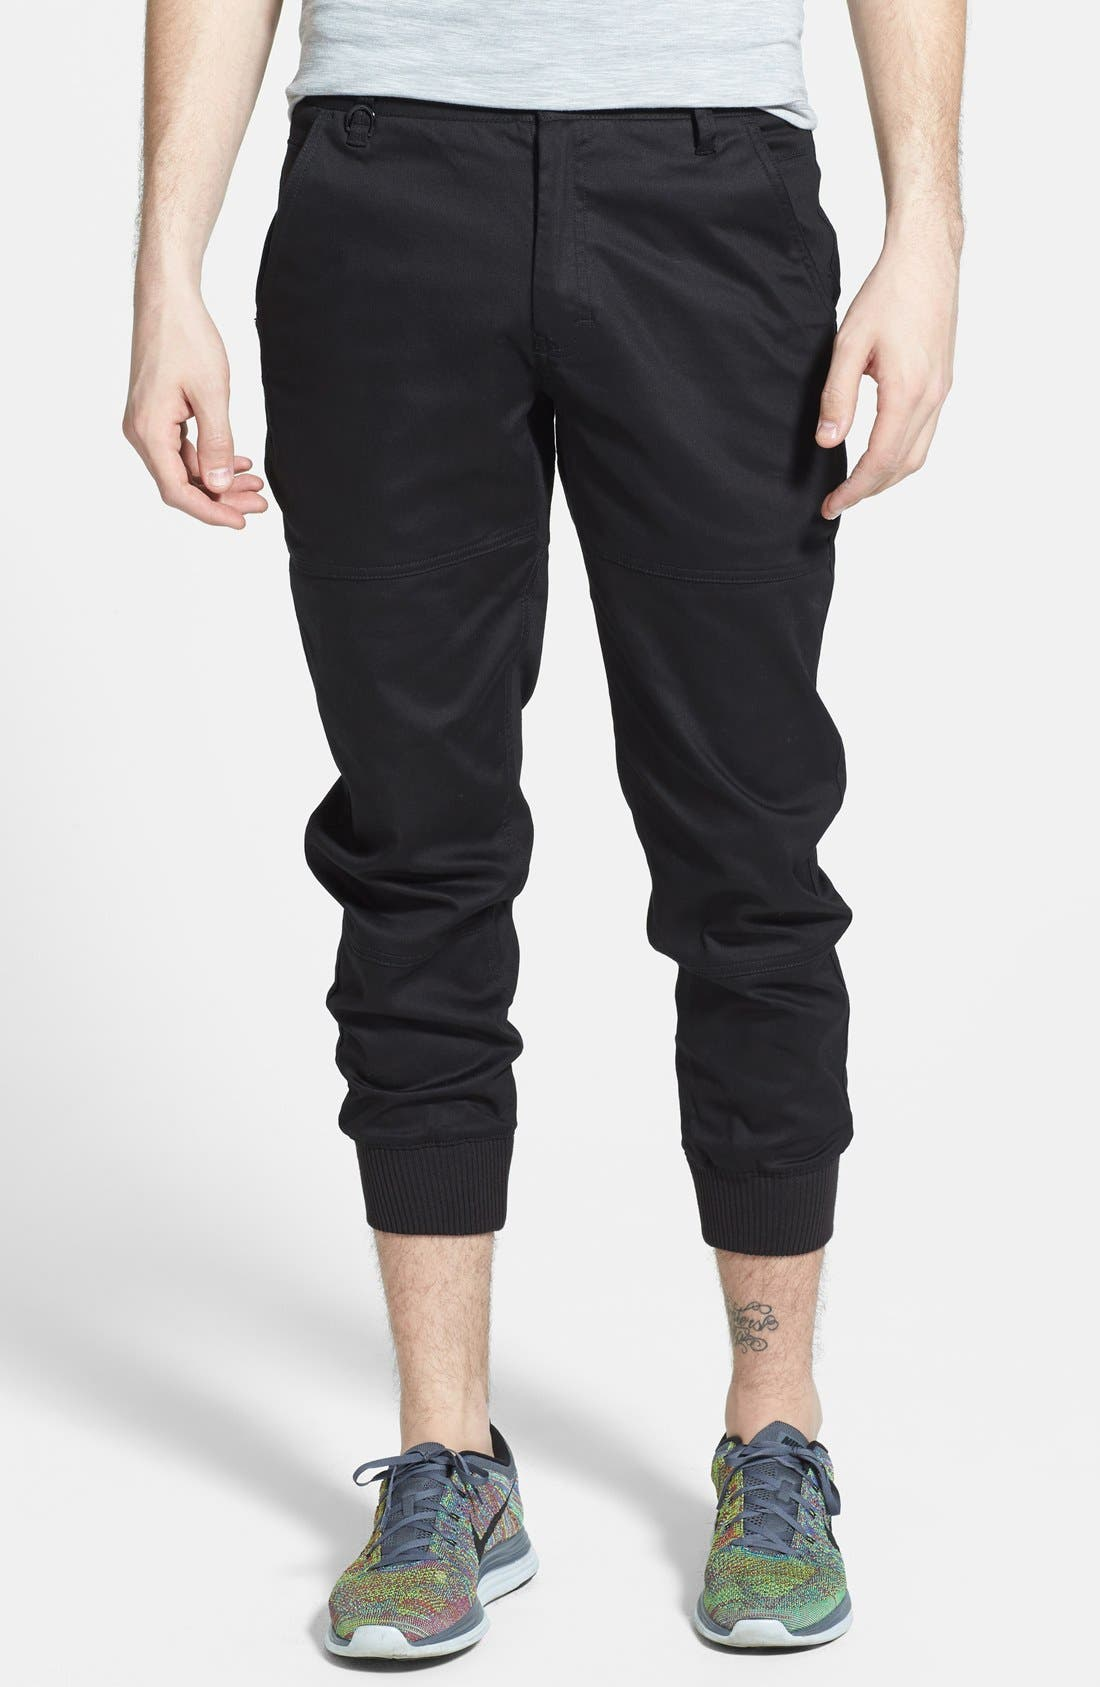 PUBLISH BRAND 'Legacy' Tailored Fit Jogger Pants, Main, color, 001